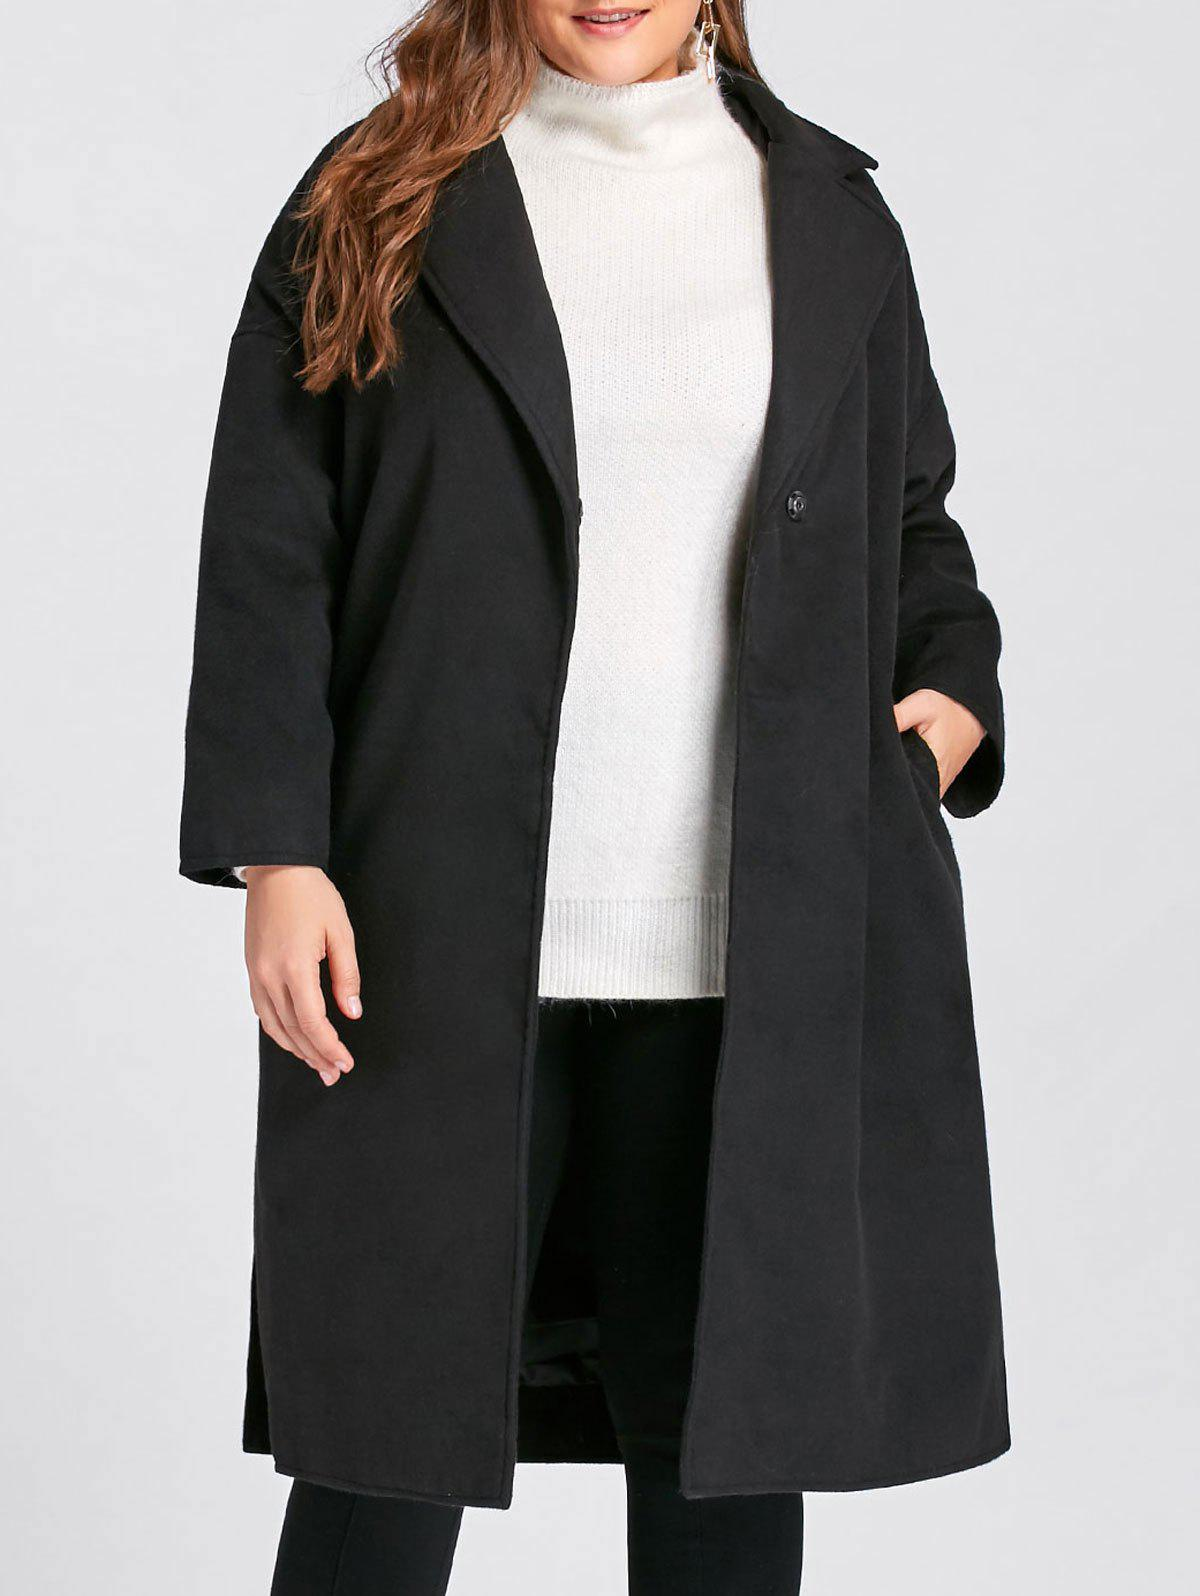 354423ff156 2018 Plus Size Belted Slit Wool Blend Trench Coat In Black 4xl ...